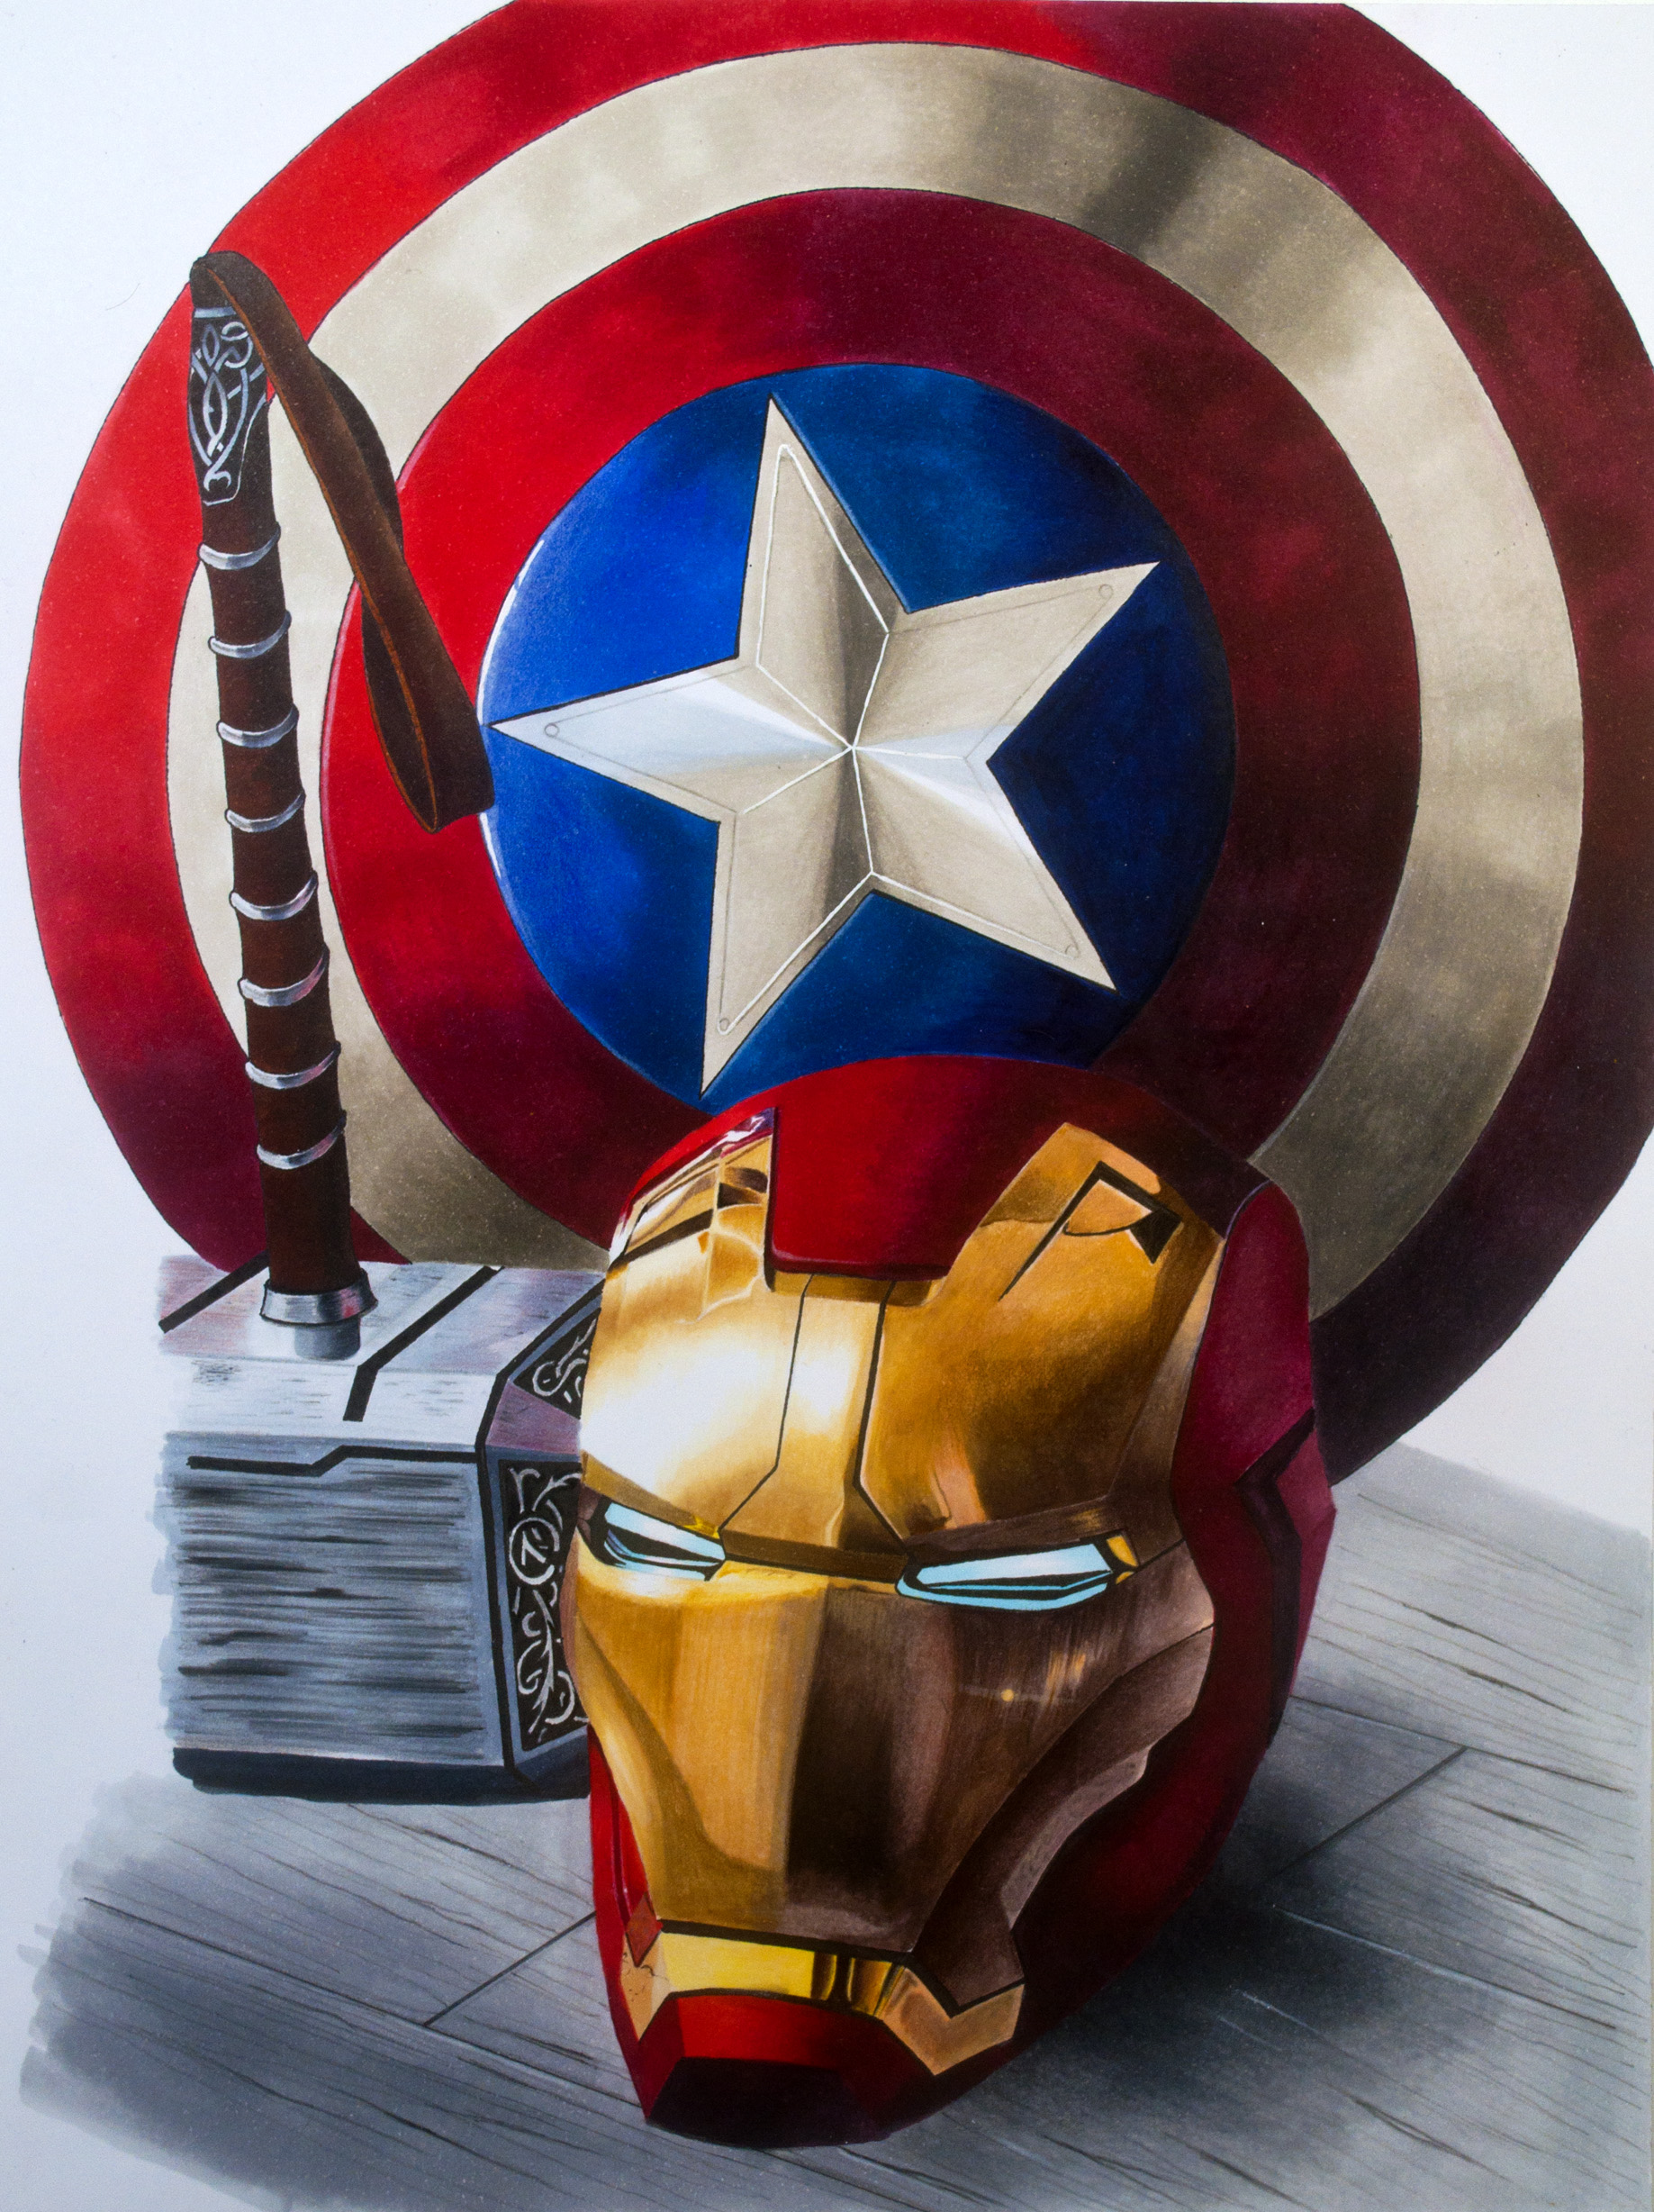 Iron Man Thor And Captain America Art With Arteza Everblend Markers The Art Gear Guide